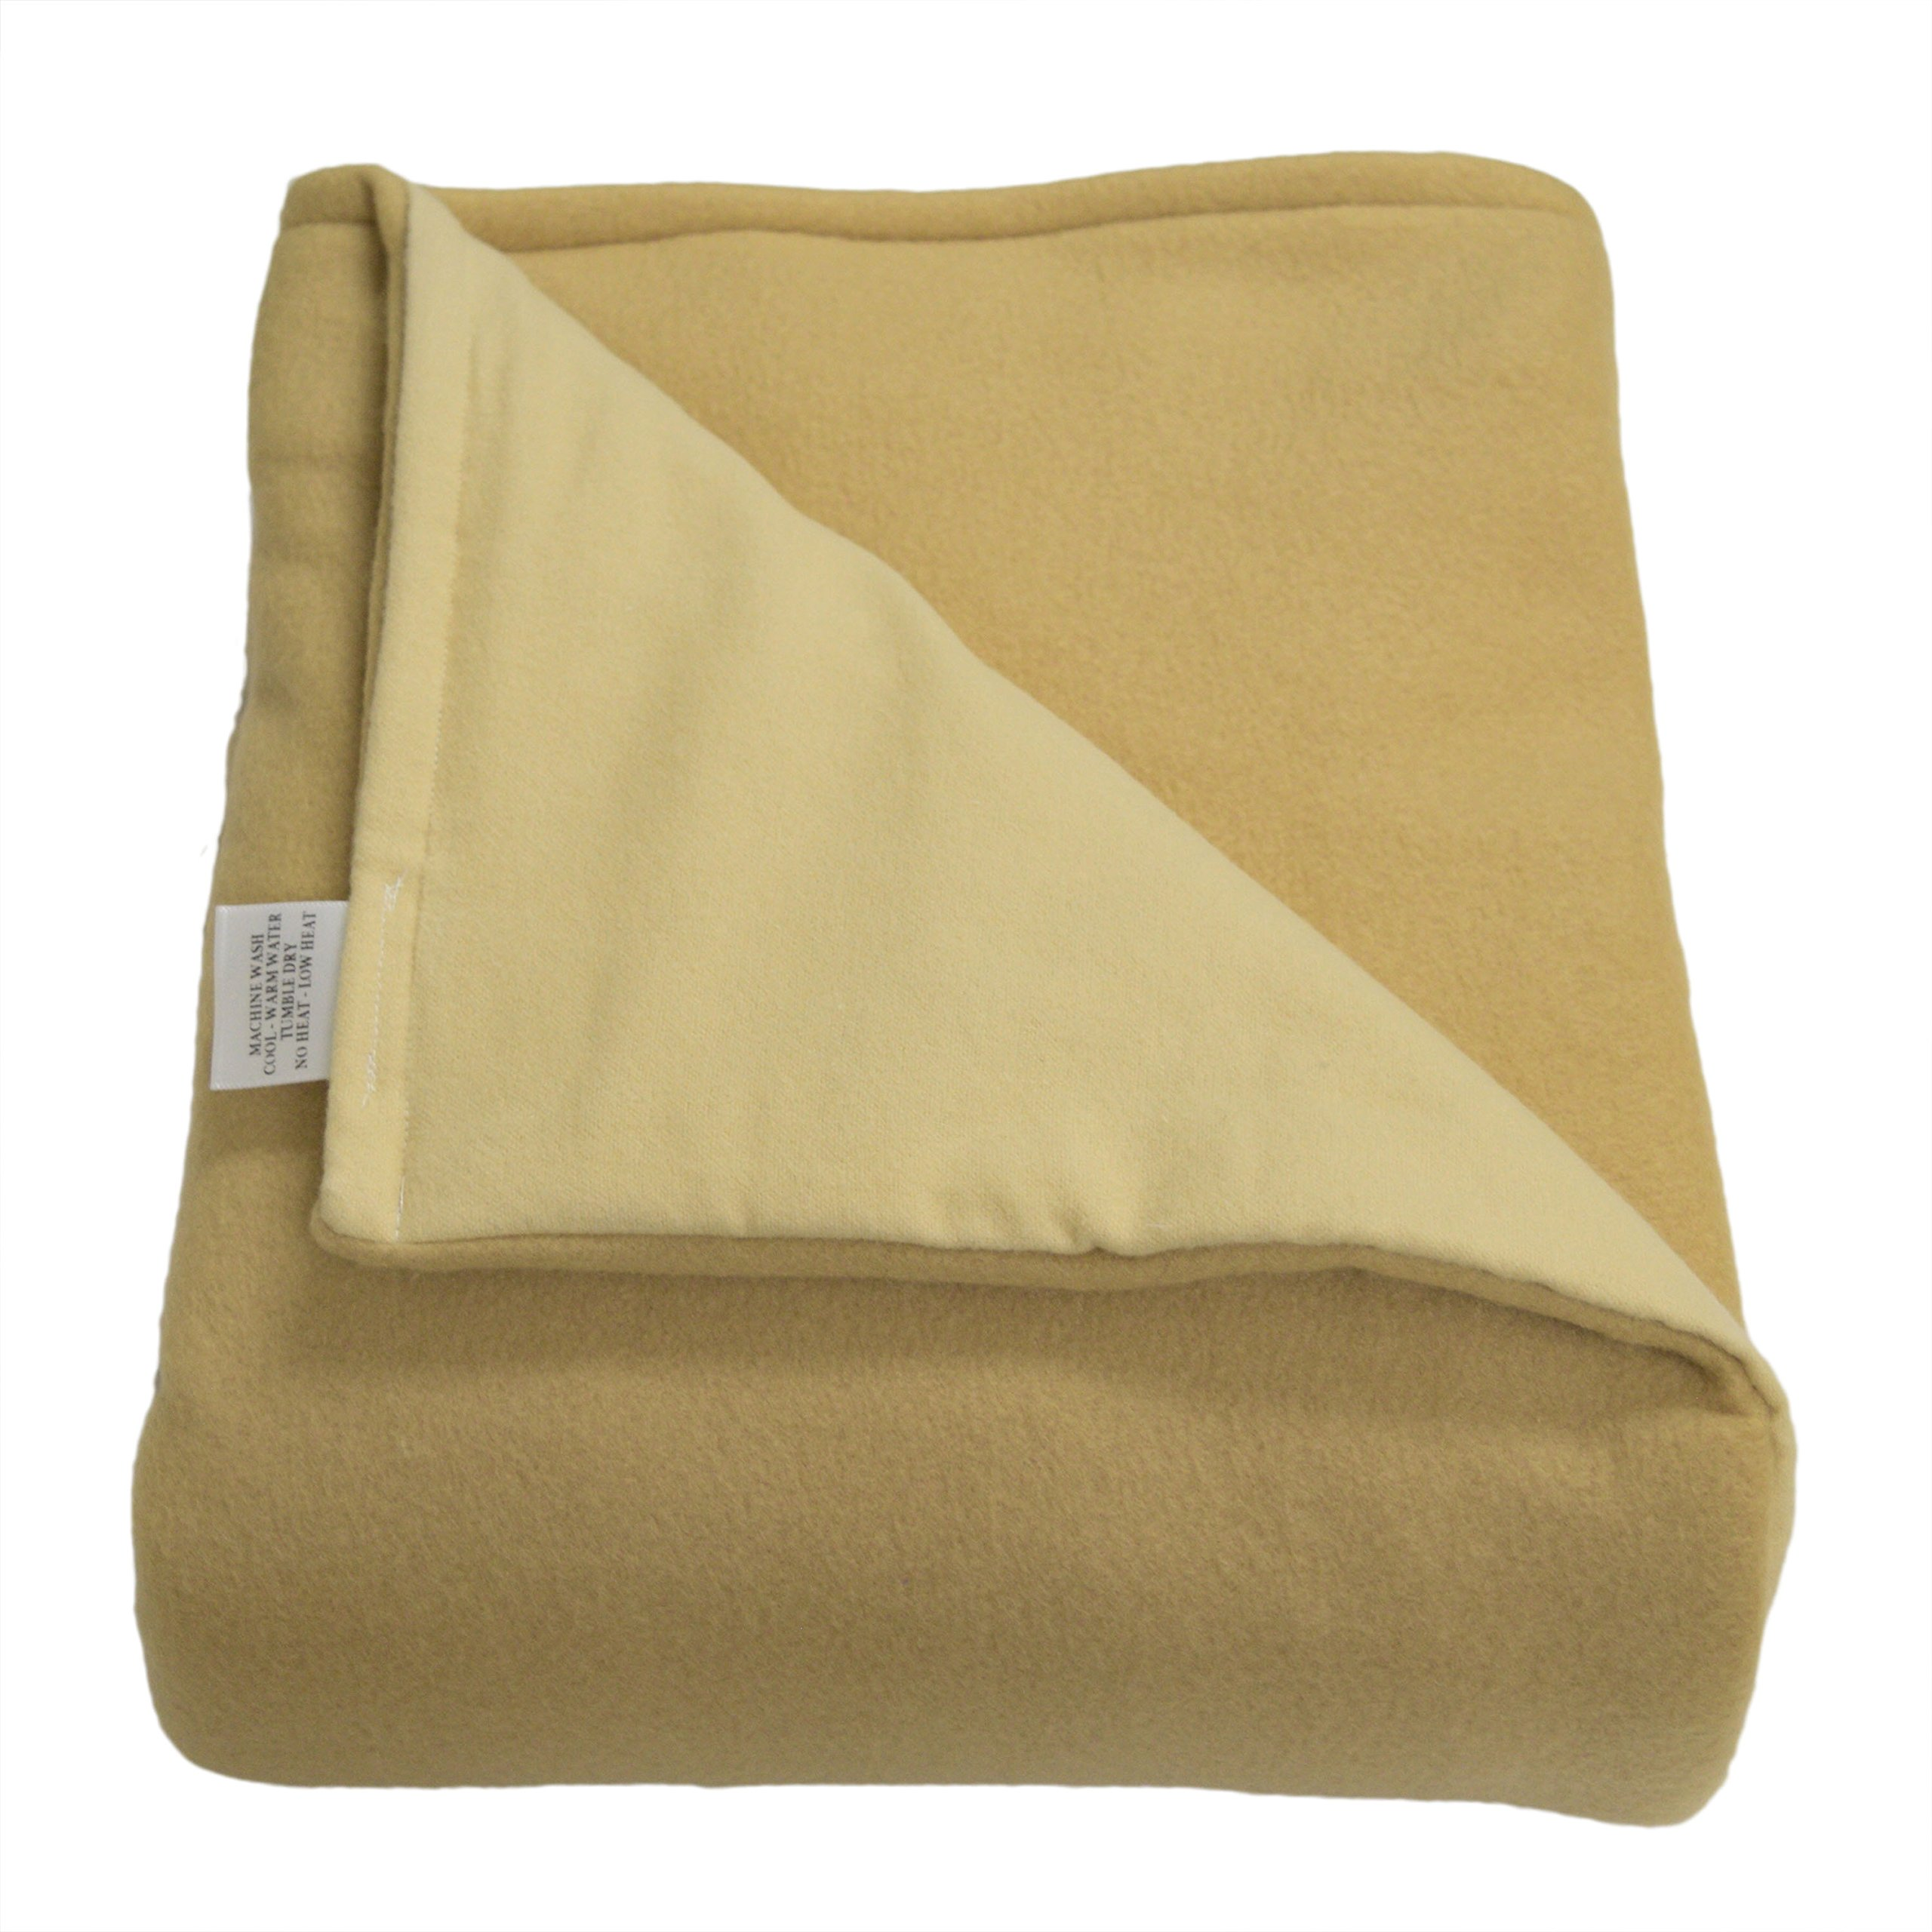 SENSORY GOODS Child Small Weighted Blanket MADE IN AMERICA- 4lb Low Pressure - Tan - Fleece/Flannel (30'' x 48'') Our Weighted Blankets provide Comfort and Relaxation.